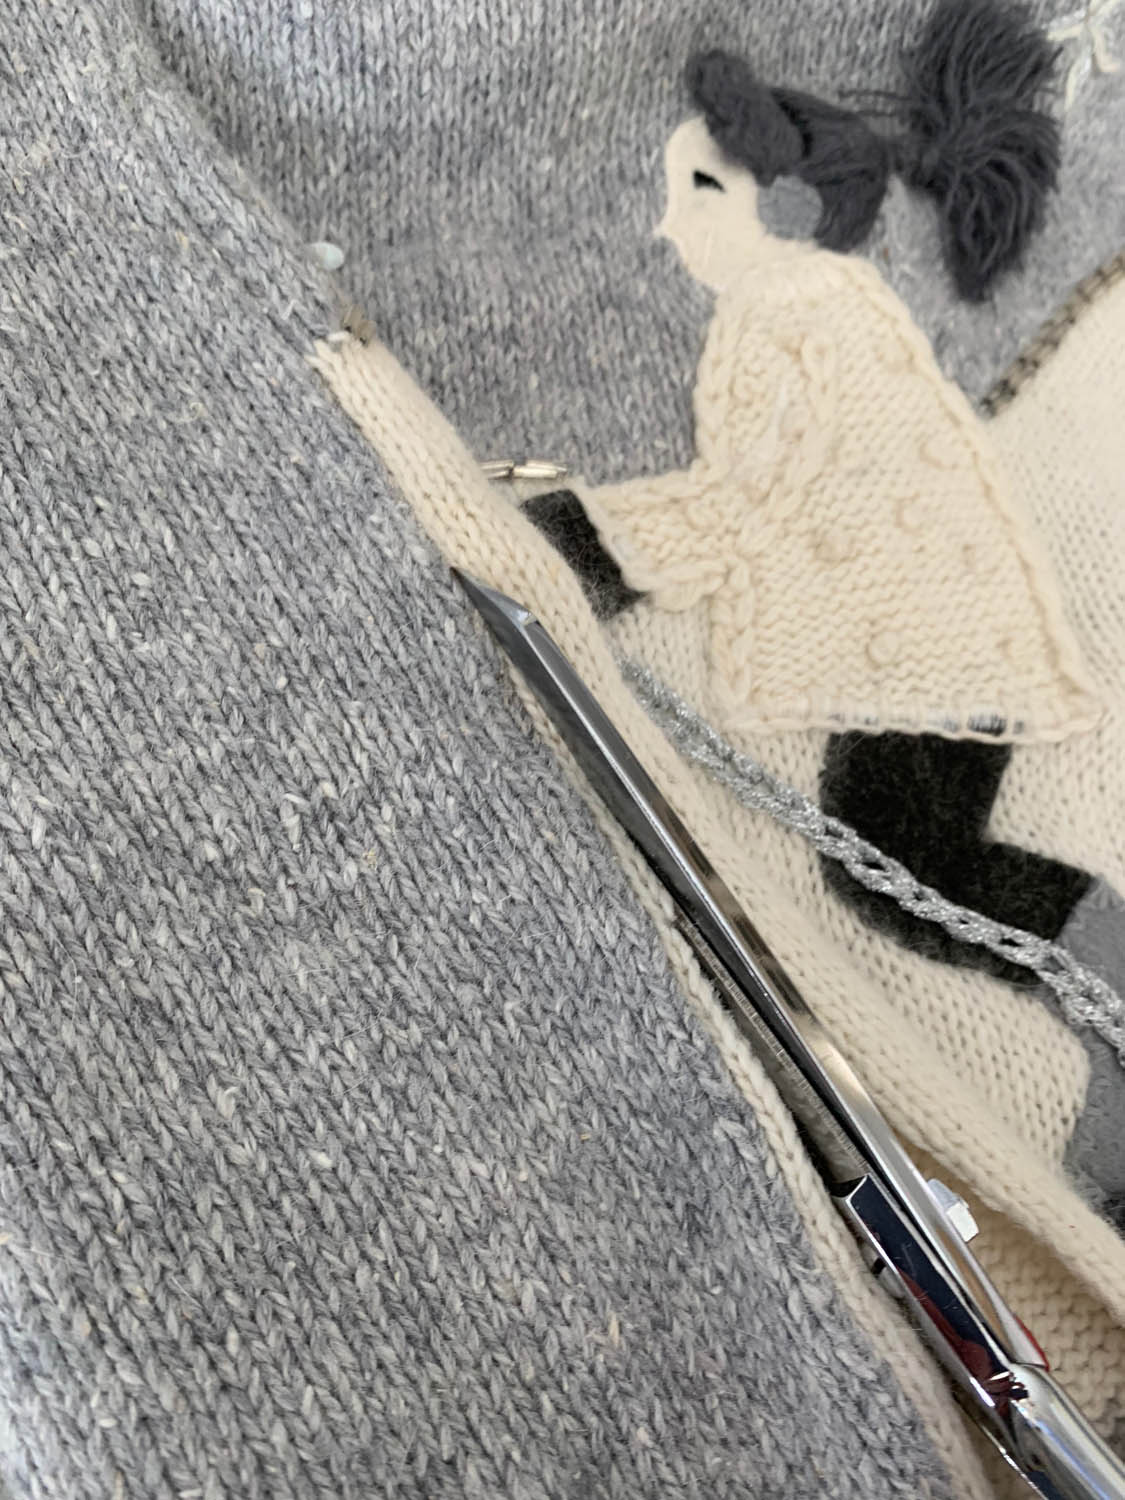 scissors cutting sweater down seam line for pillow top